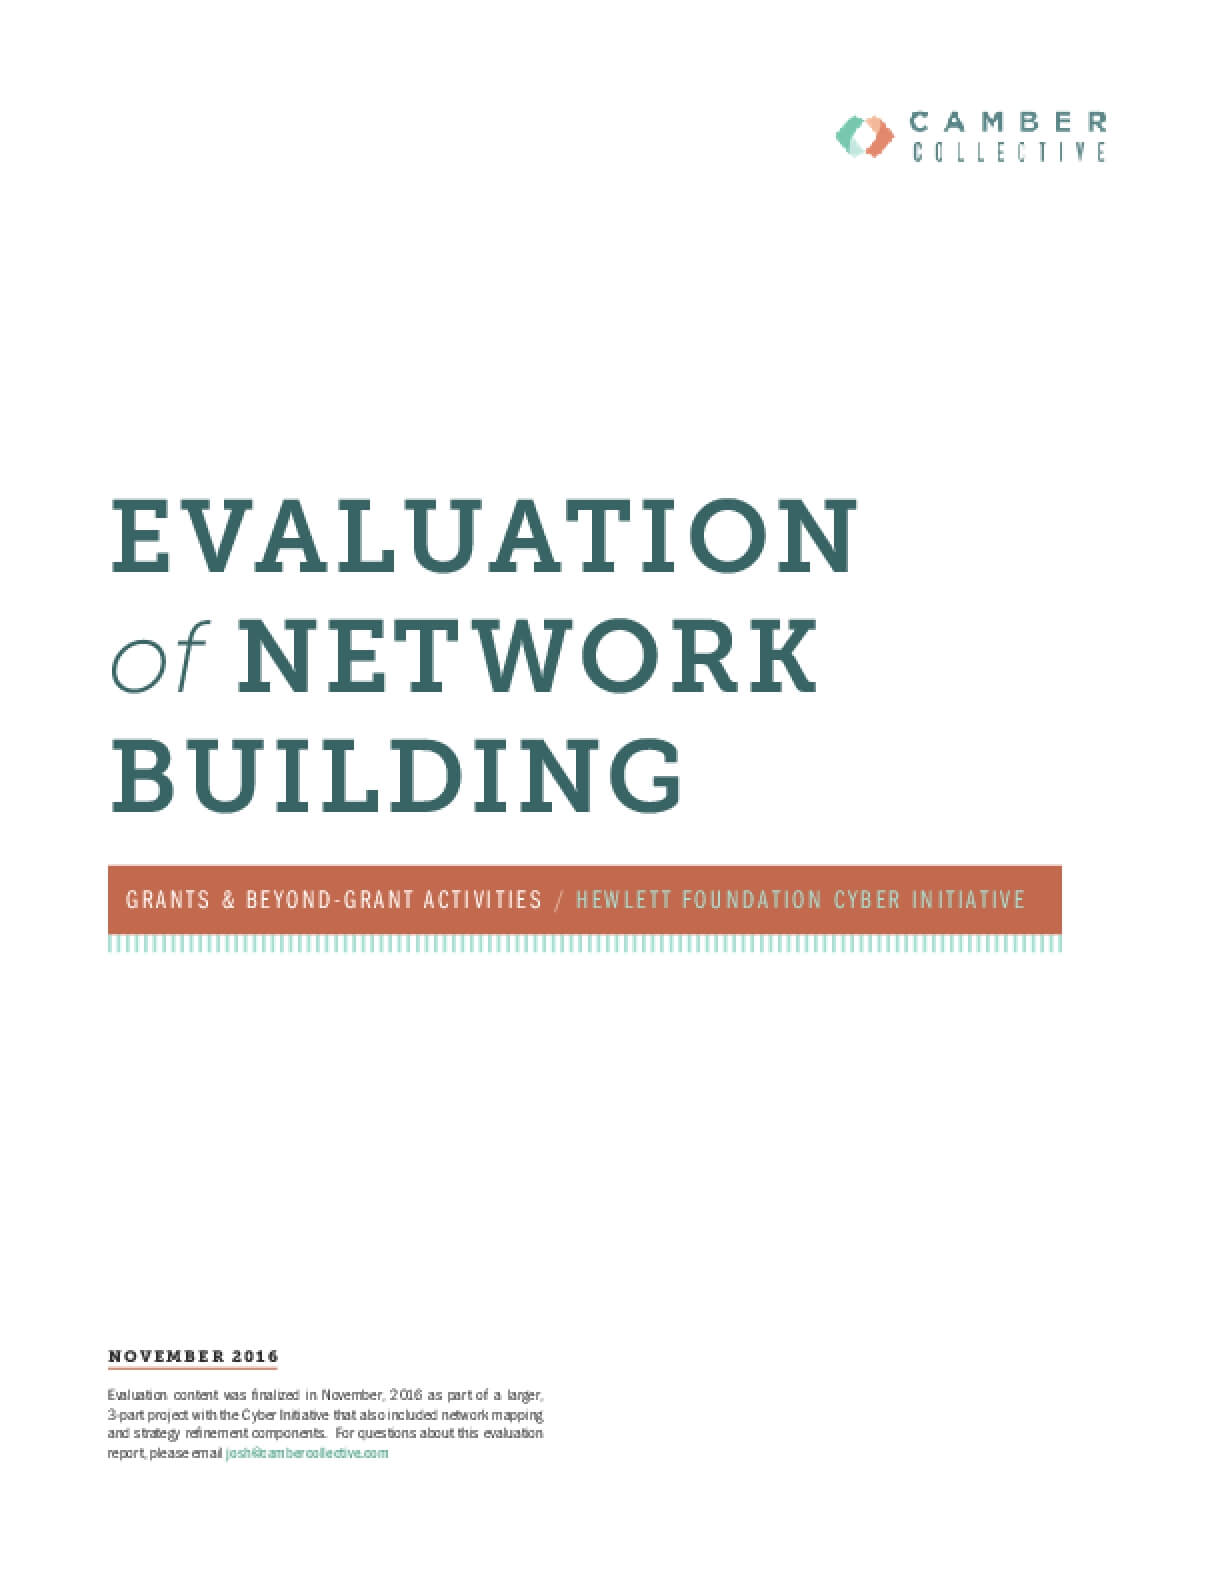 Evaluation of Network Building